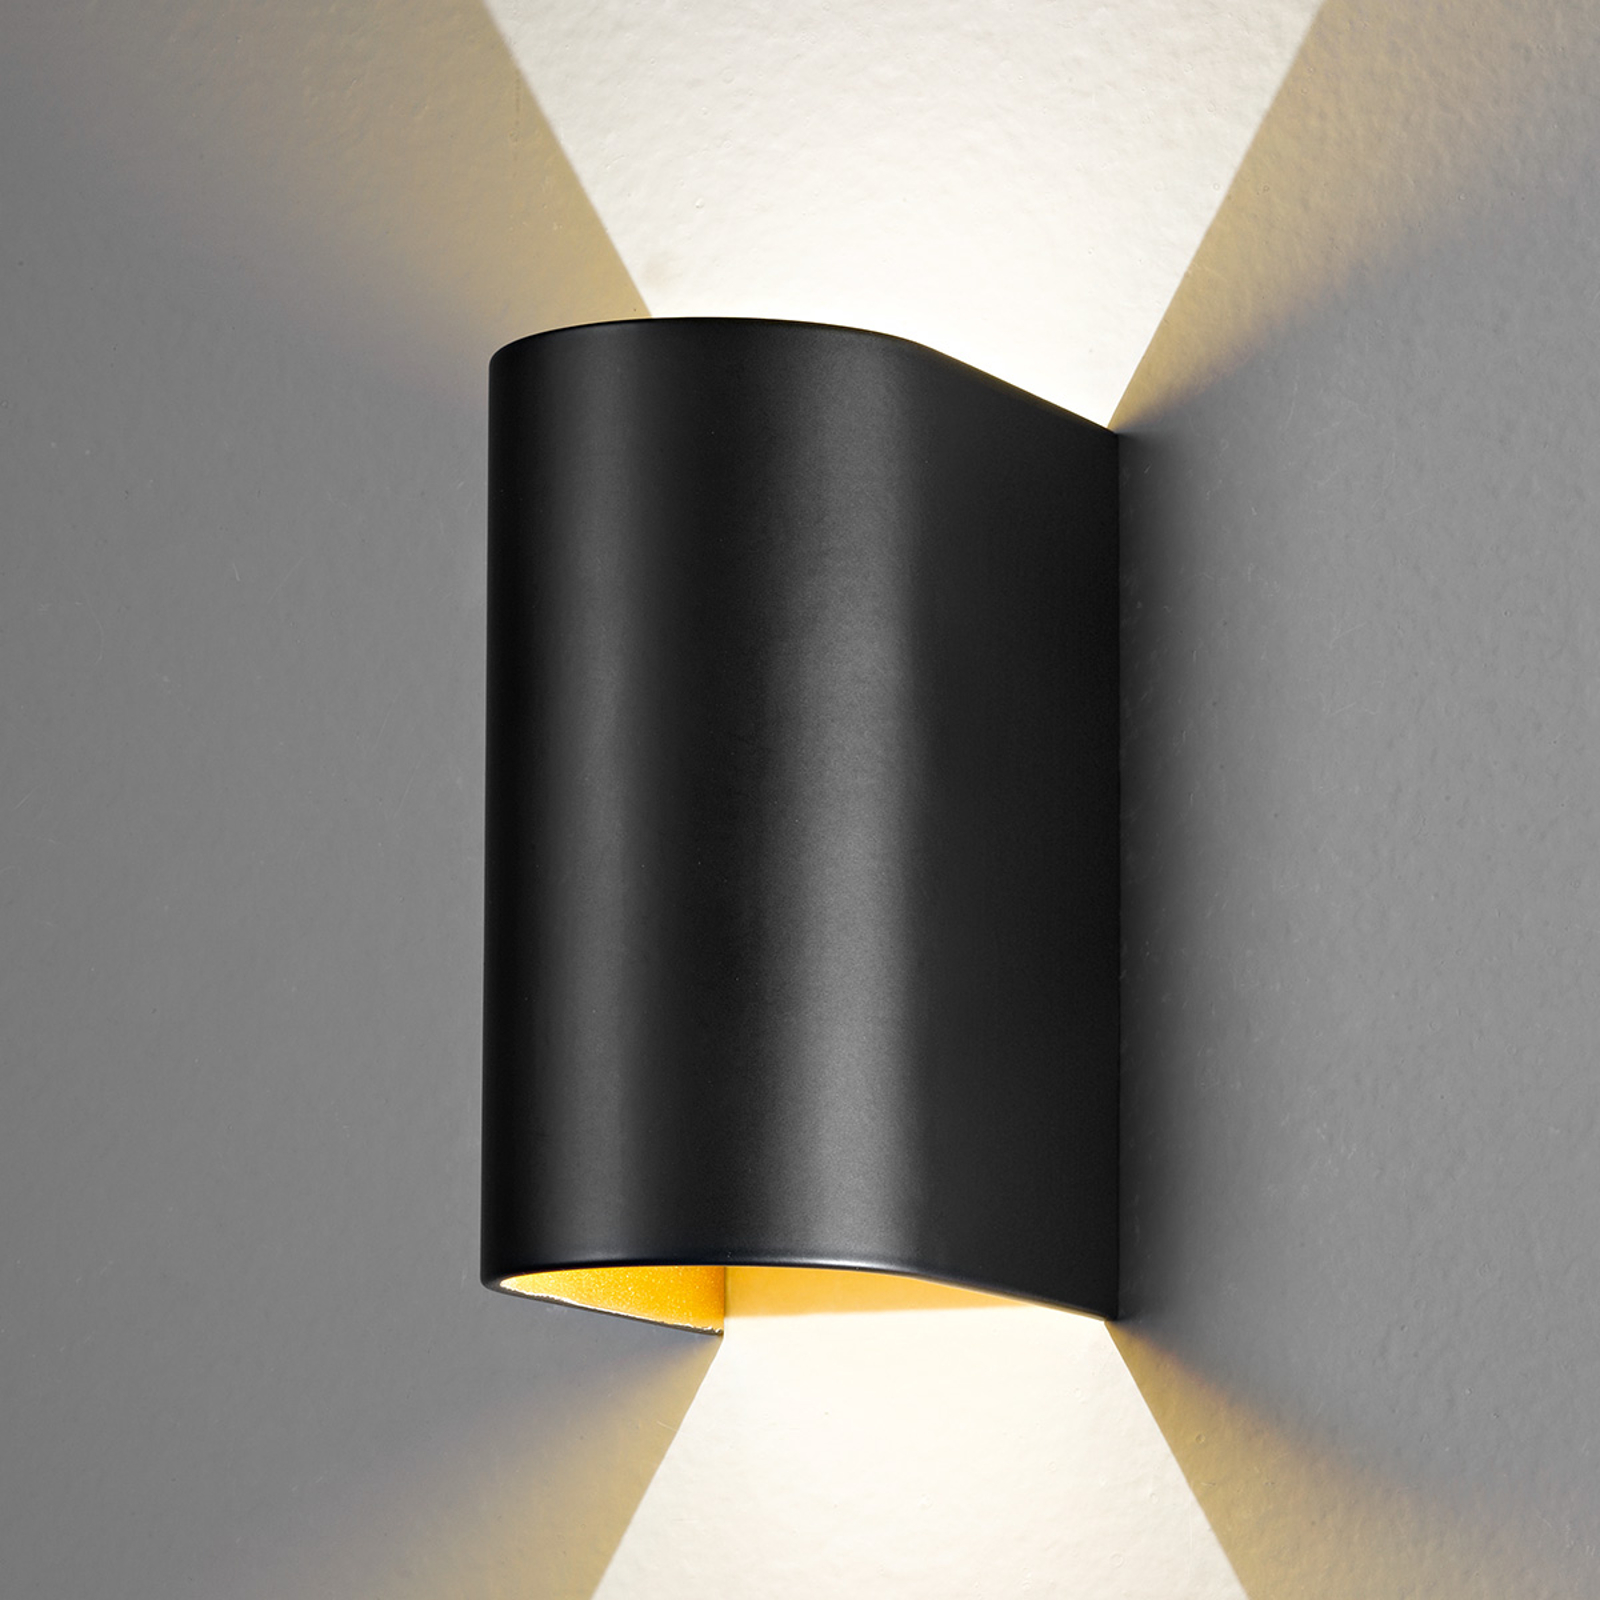 Black-gold Feeling LED wall light_3023089_1